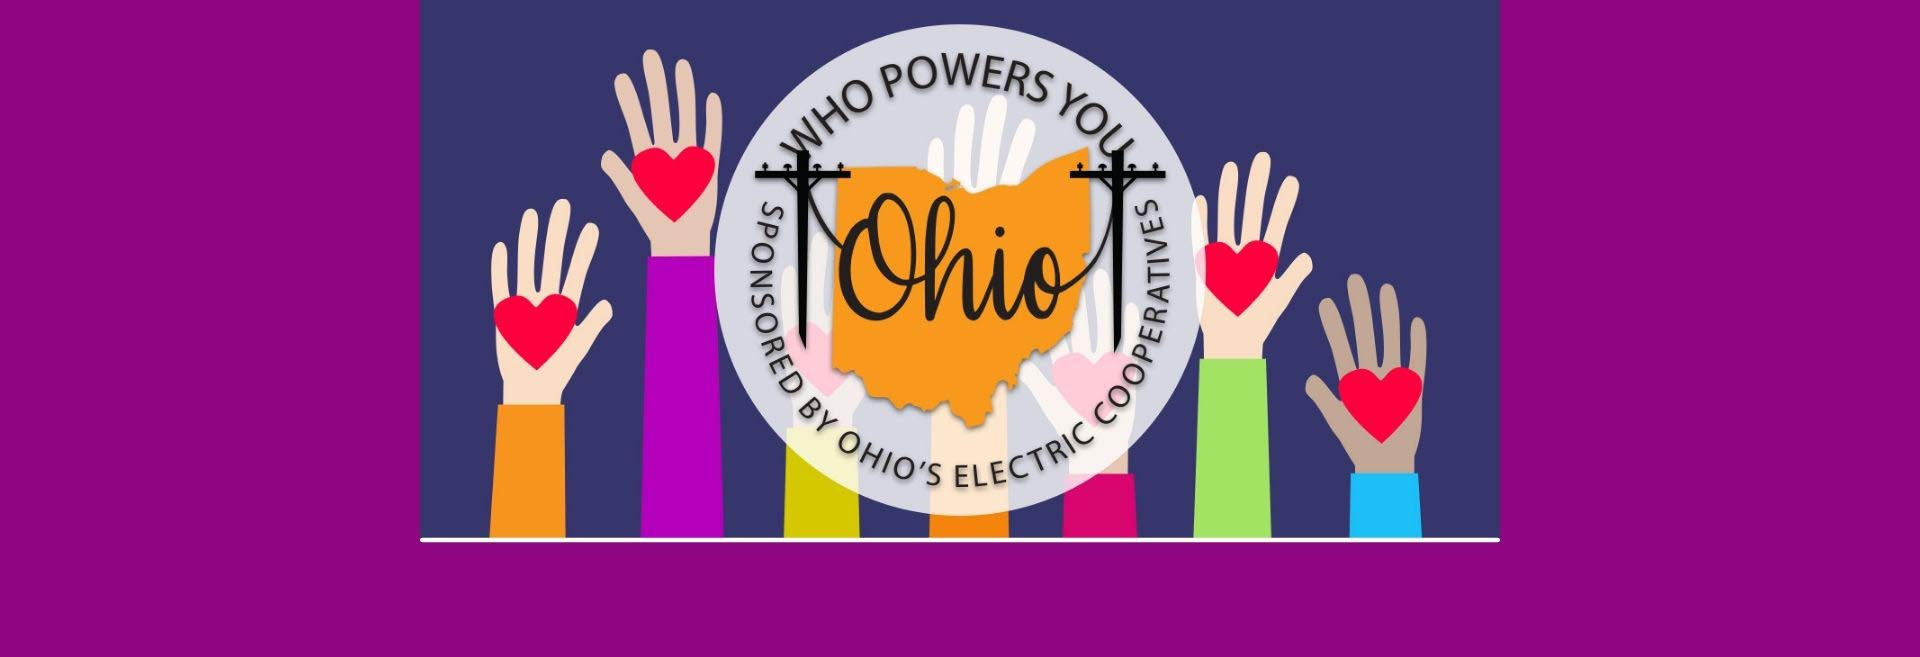 Who powers YouOhio contest